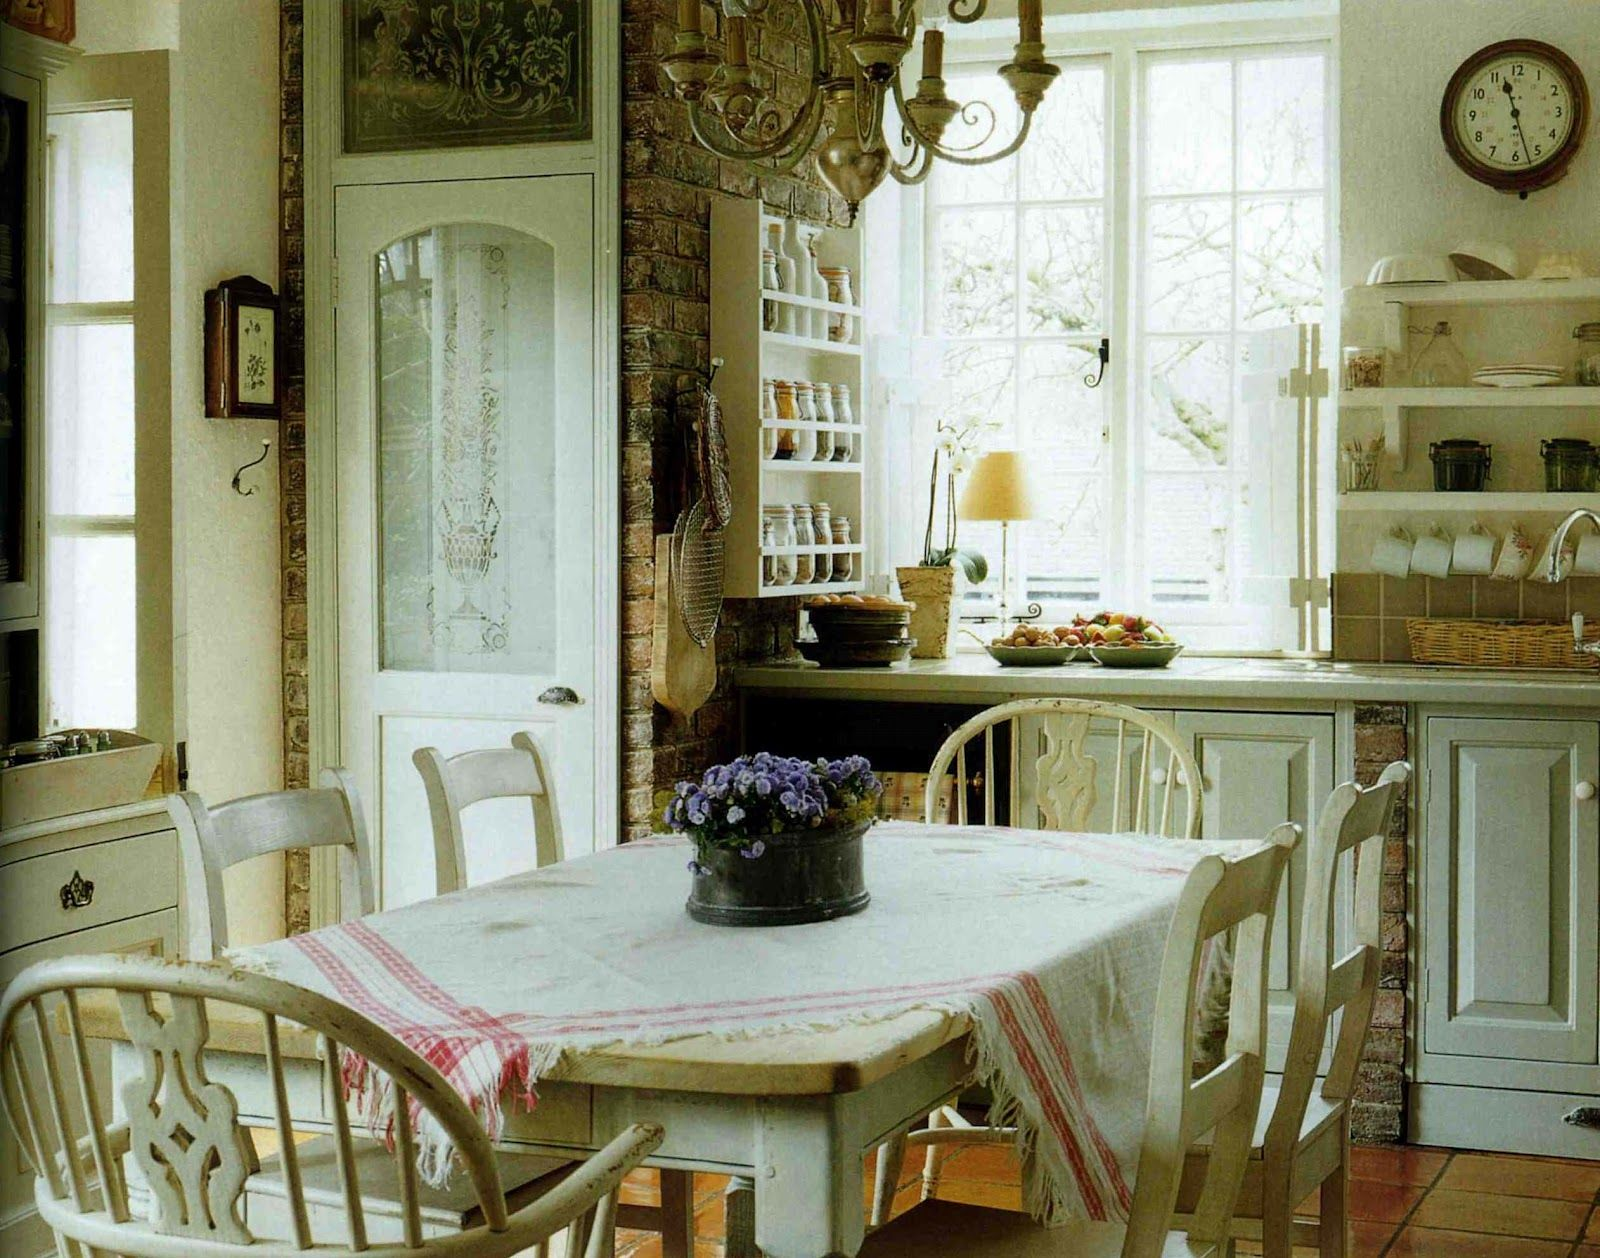 English home magazine suspiciously like the kitchen in lionel 39 s country home in the british tv - English cottage kitchen designs ...